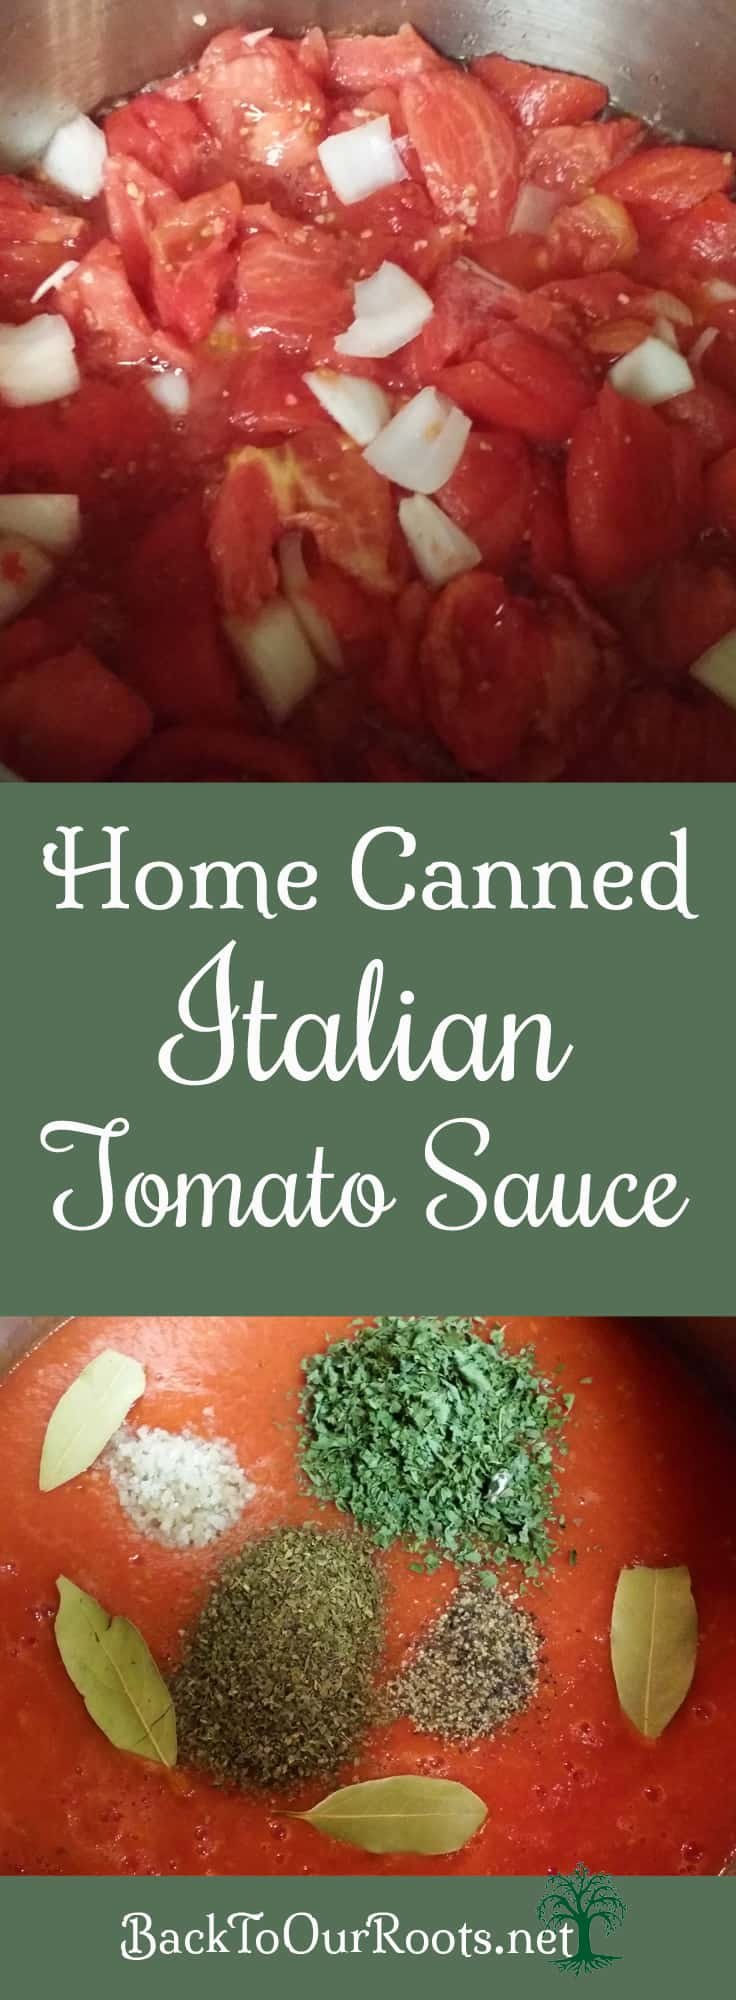 Italian Herbed Tomato Sauce for Canning